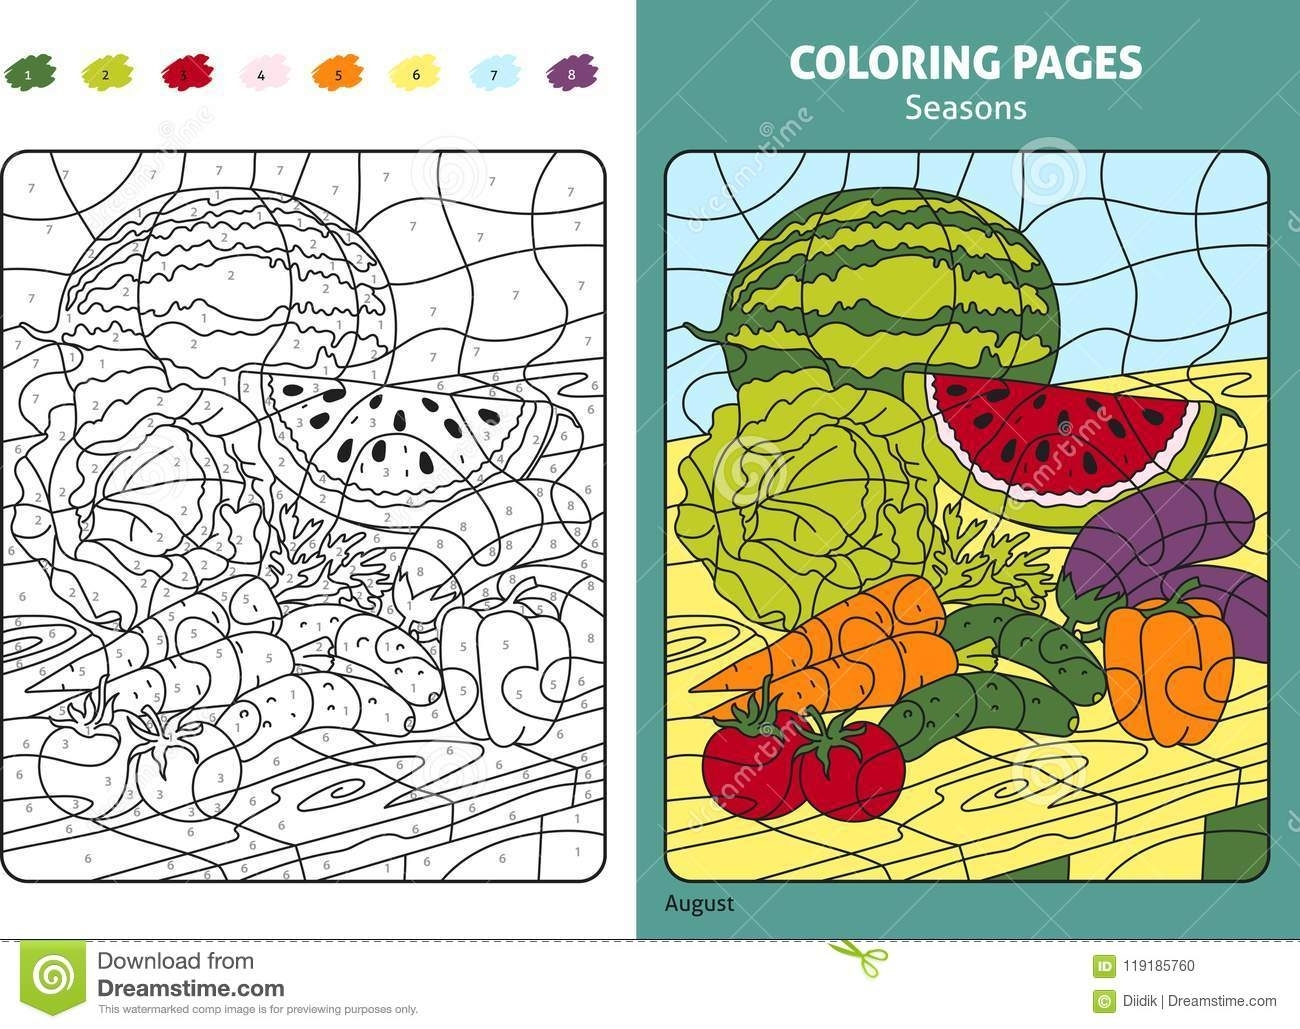 Seasons Coloring Page For Kids, August Month Stock Vector within August Printable Images To Color